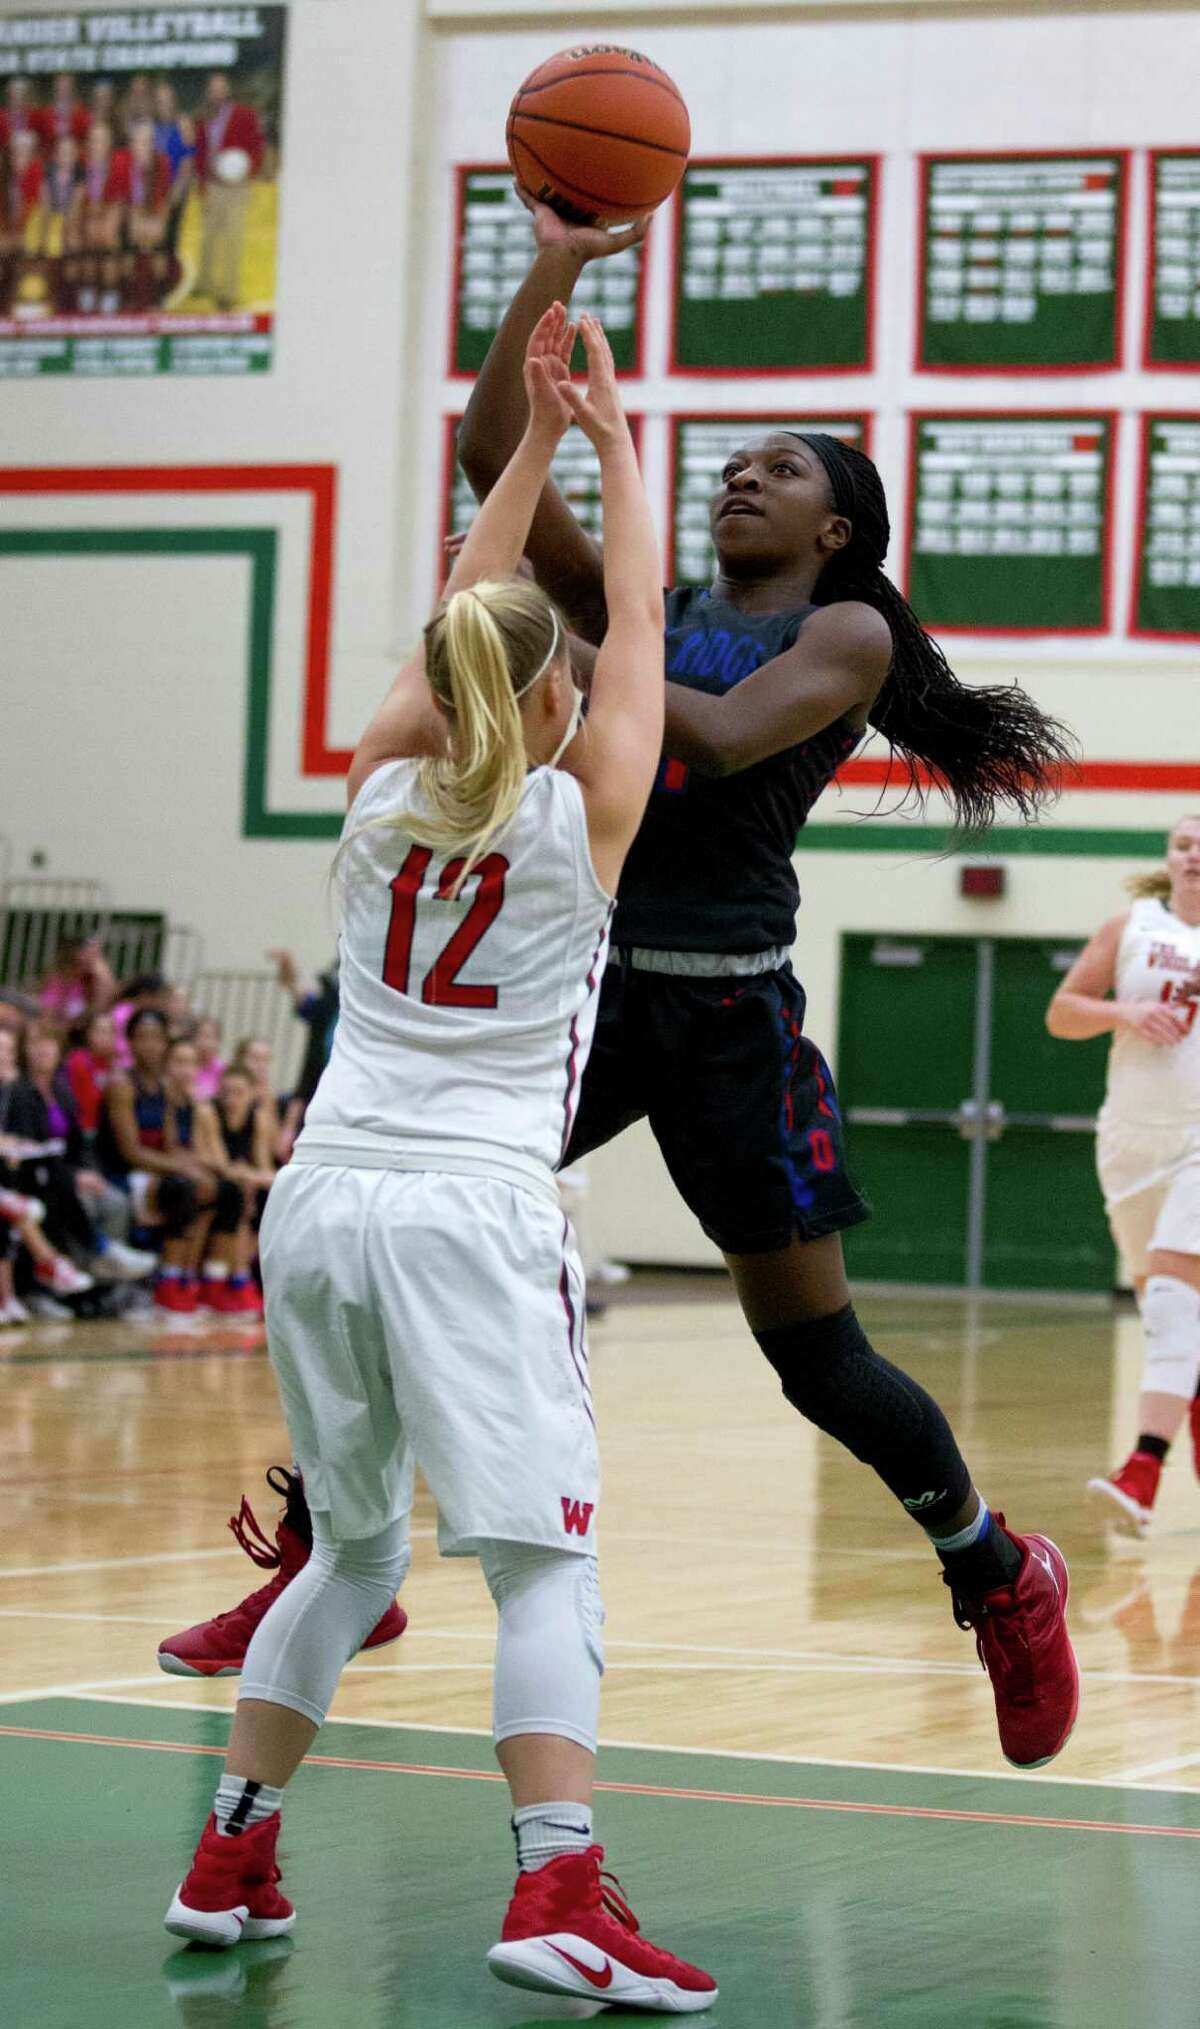 Oak Ridge small forward Alecia White (21) shoots over The Woodlands guard Sarah Butterfield (12) during the second quarter of a District 12-6A high school girls basketball game at The Woodlands High School Friday, Feb. 3, 2017, in The Woodlands. Oak Ridge defeated The Woodlands 57-47.